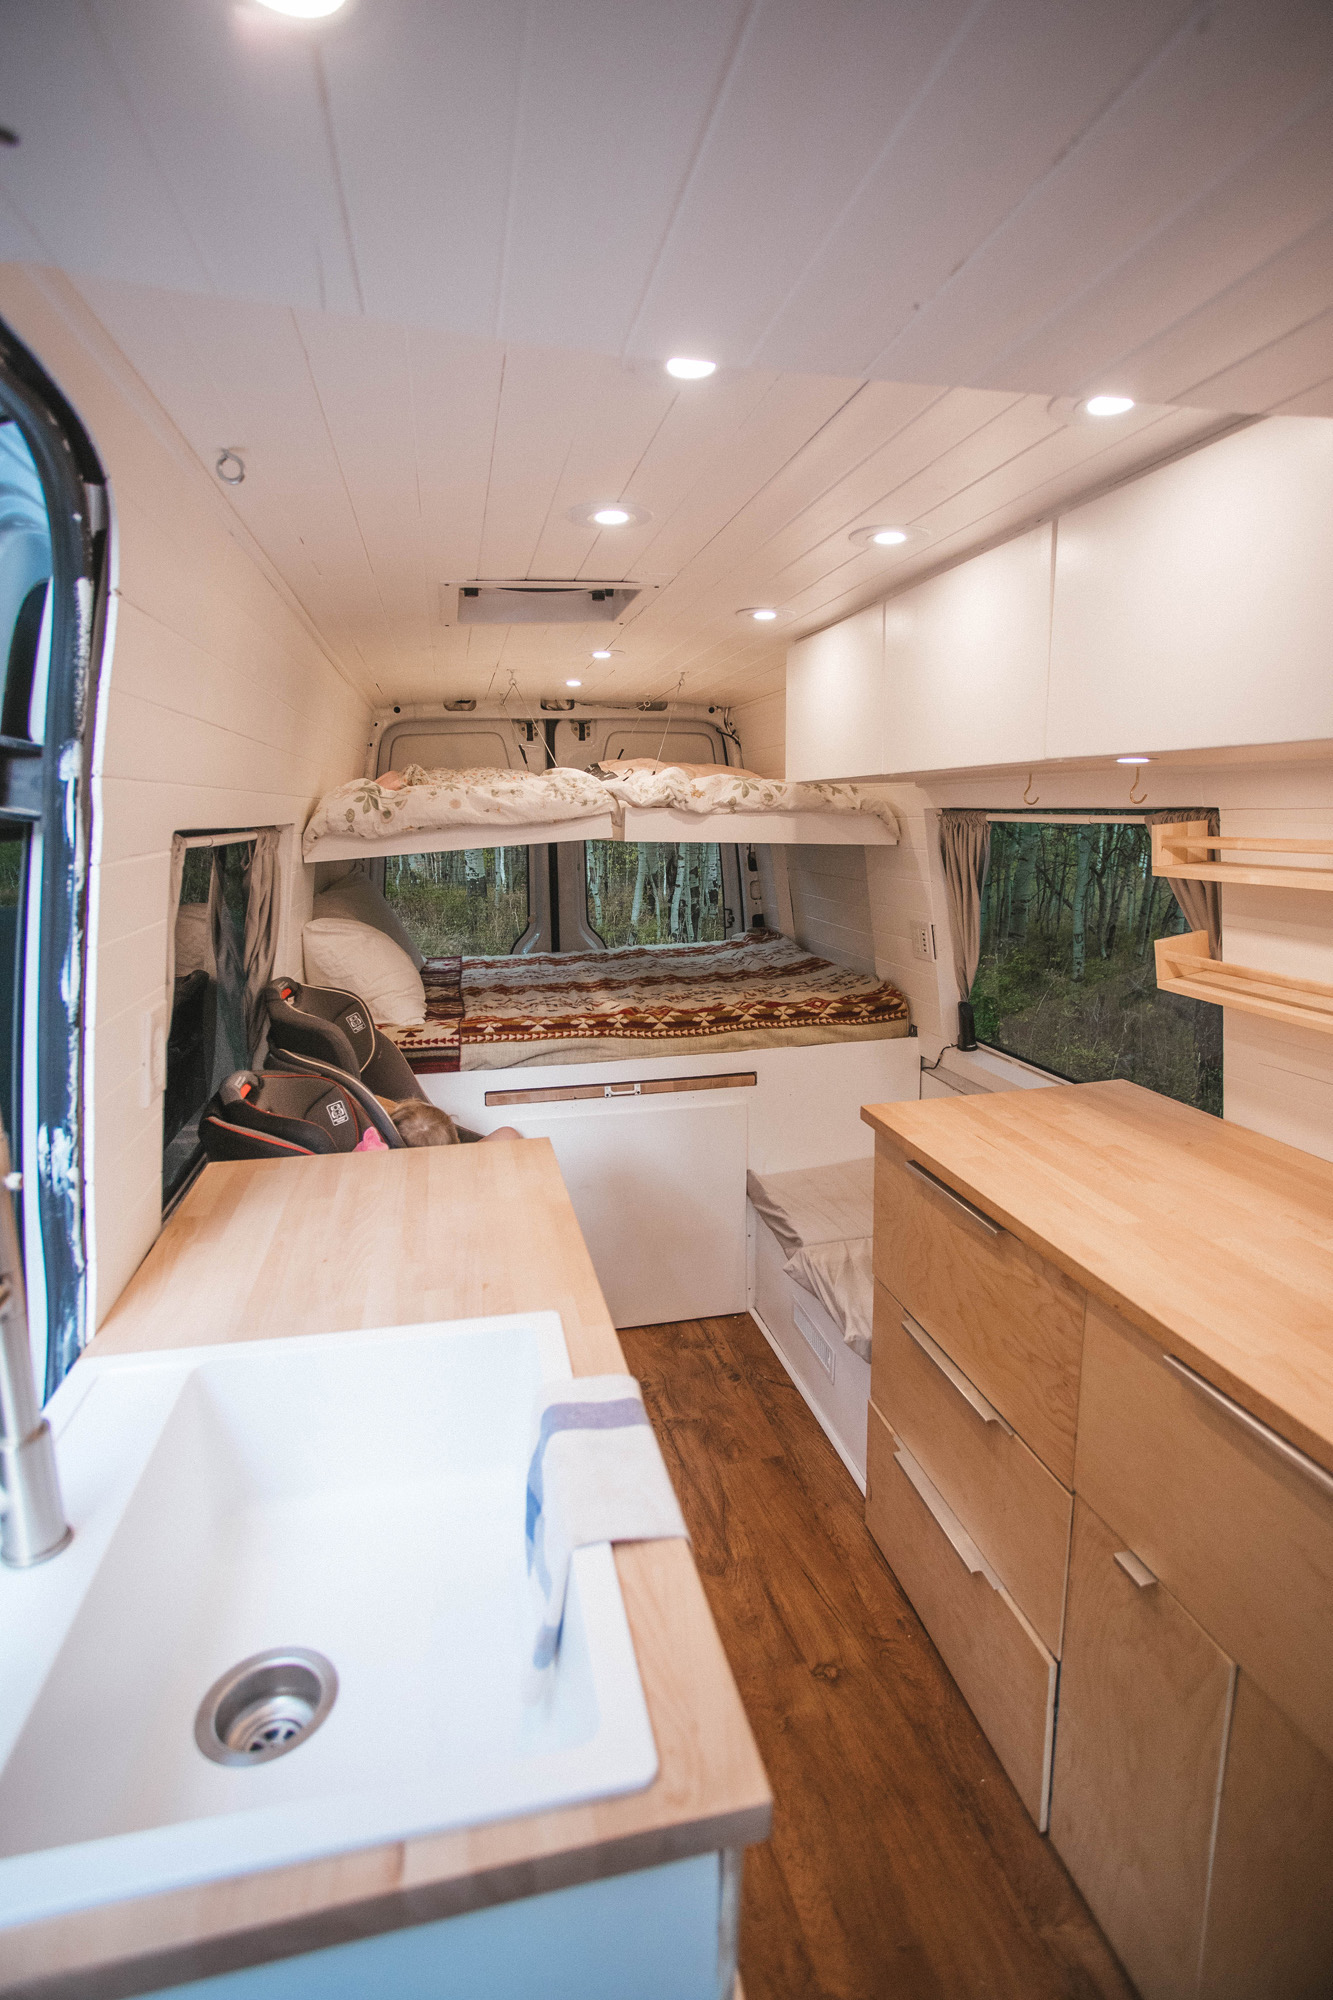 2 Childrens Bunk Beds. 48 X 30 inches each. Lower bed 72 X 50 Inches.. Mercedes-Benz Sprinter 2014